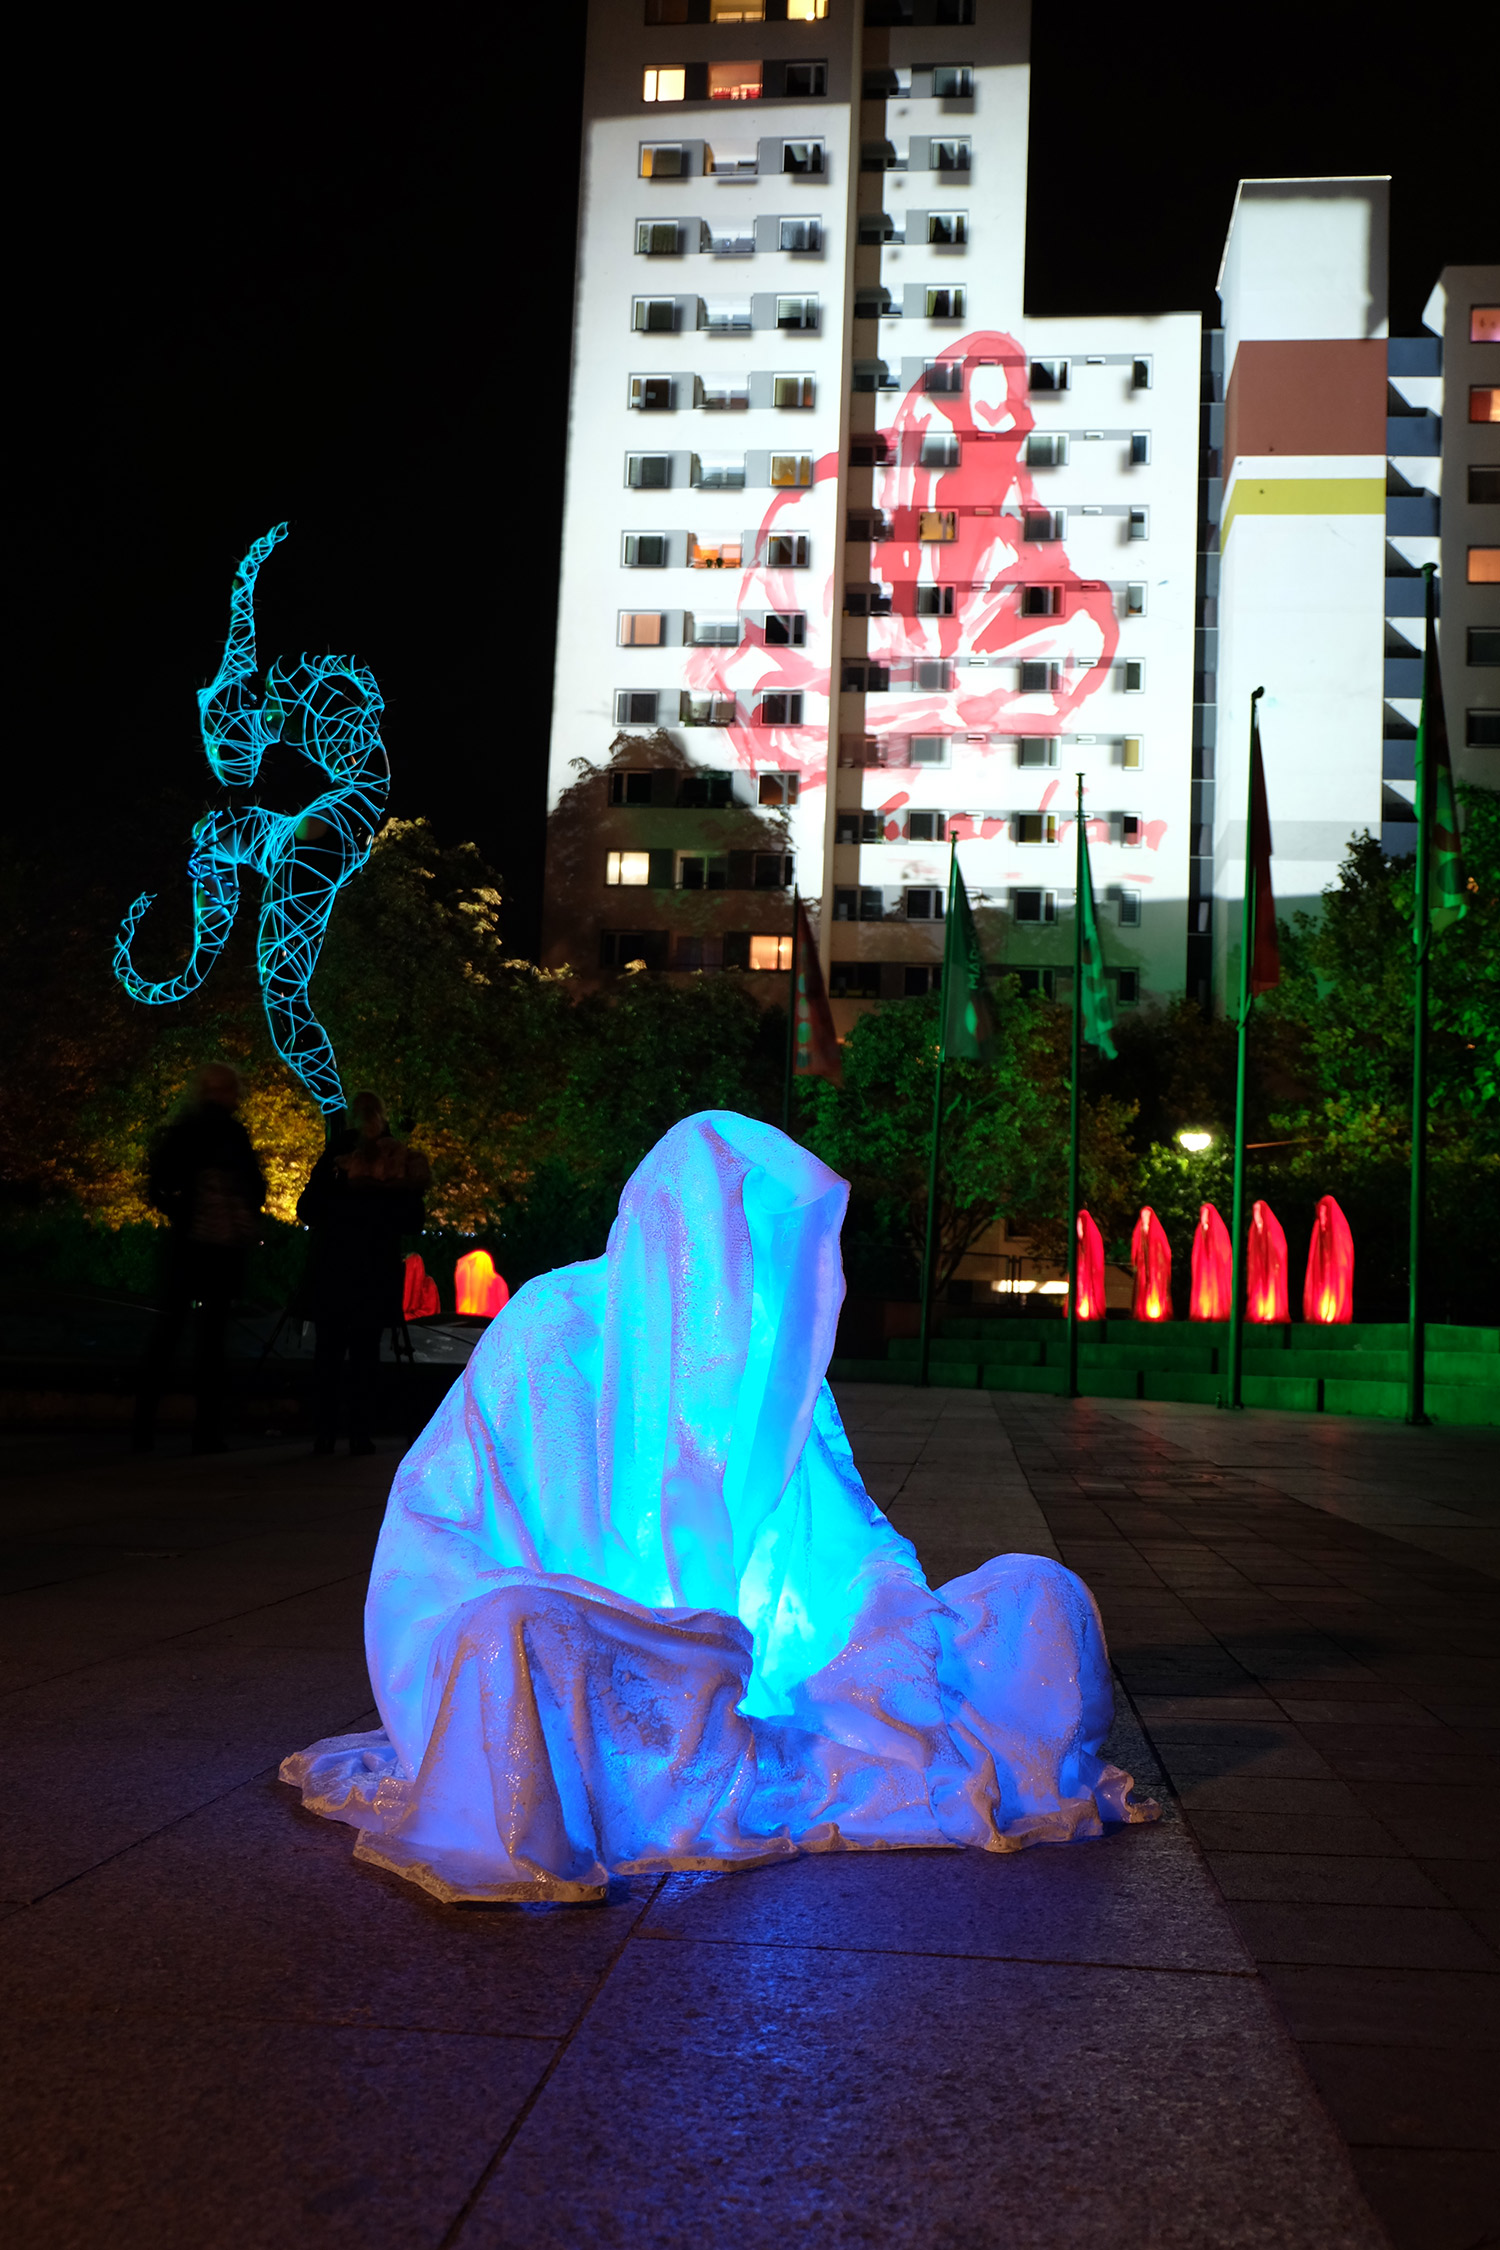 festival-of-lights-berlin-light-art-show-ilumination-lumina-glow-fine-art-modern-design-contemporary-sculpture-statue-ghost-faceless-9104